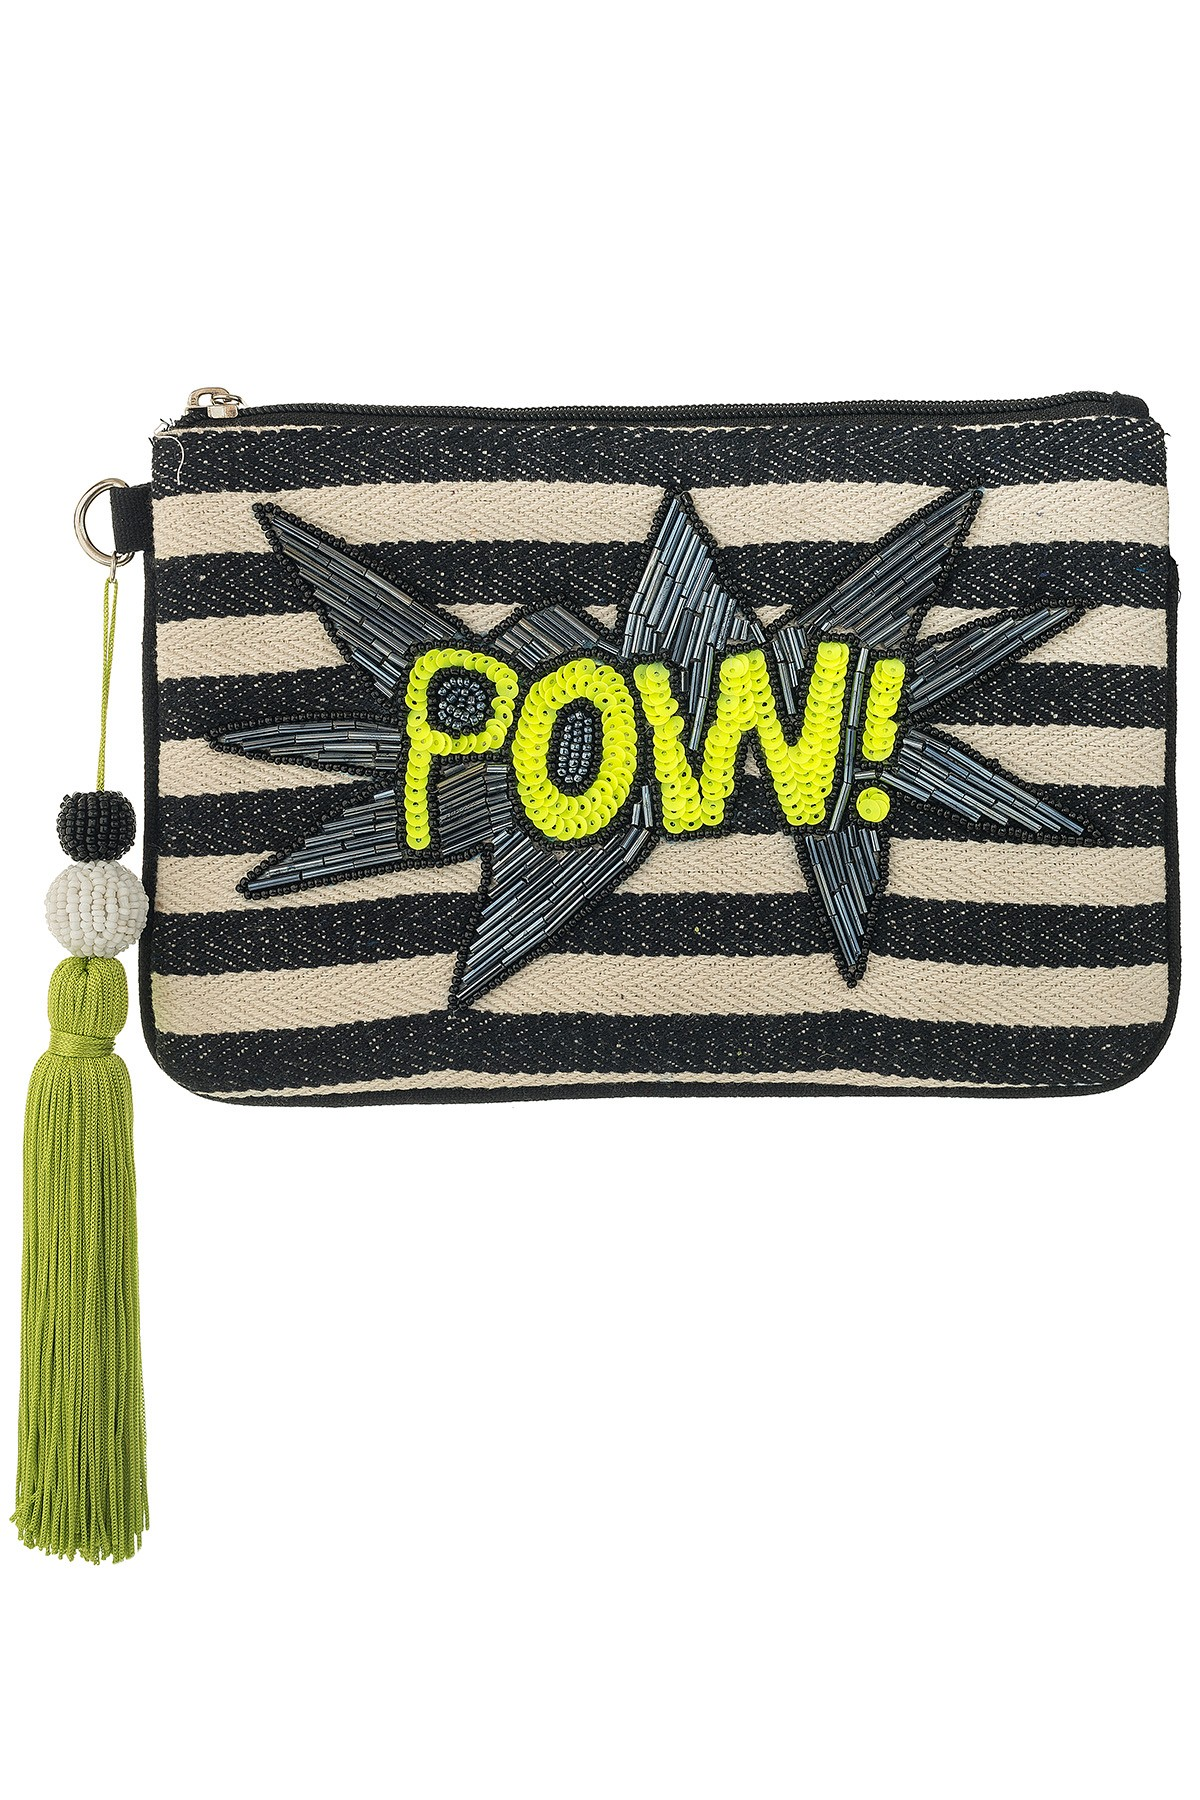 POW!_ Medium Clutch